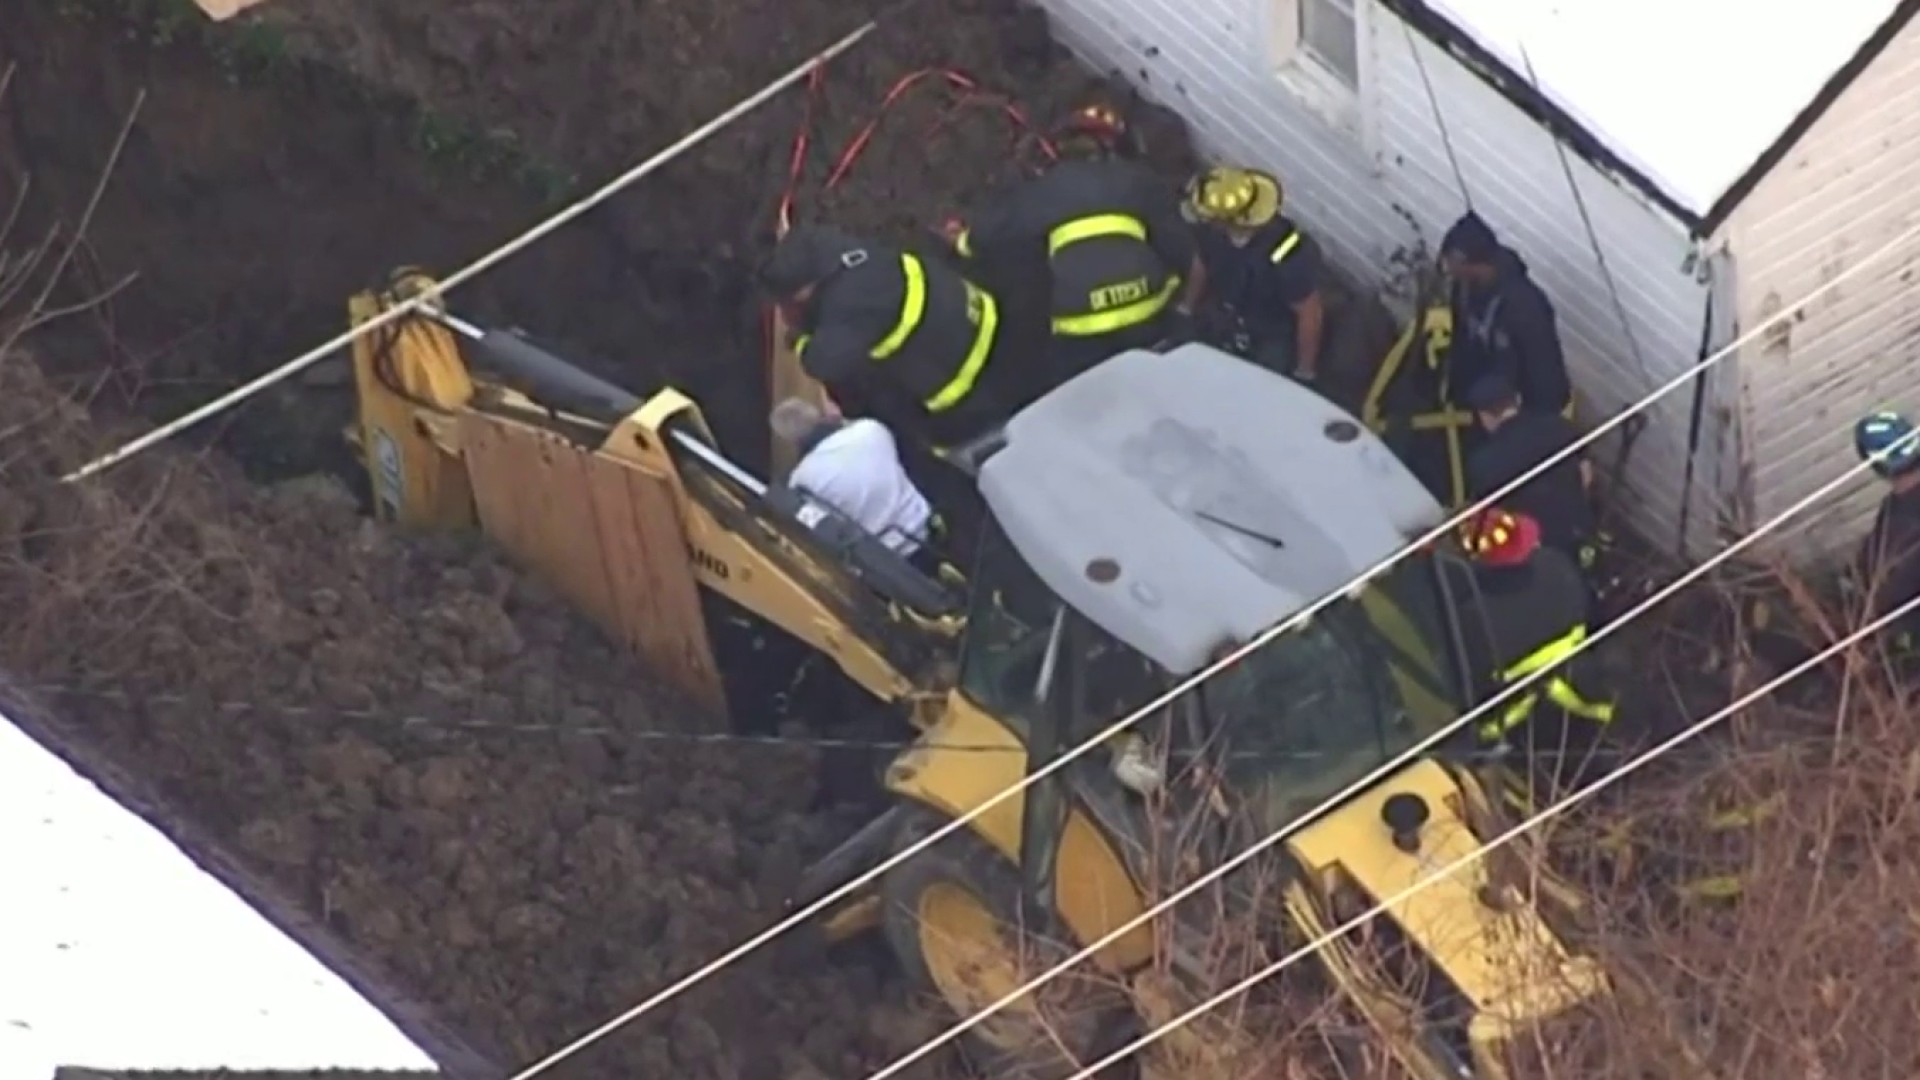 Crews work to rescue man trapped in trench in backyard of Detroit home - WDIV ClickOnDetroit